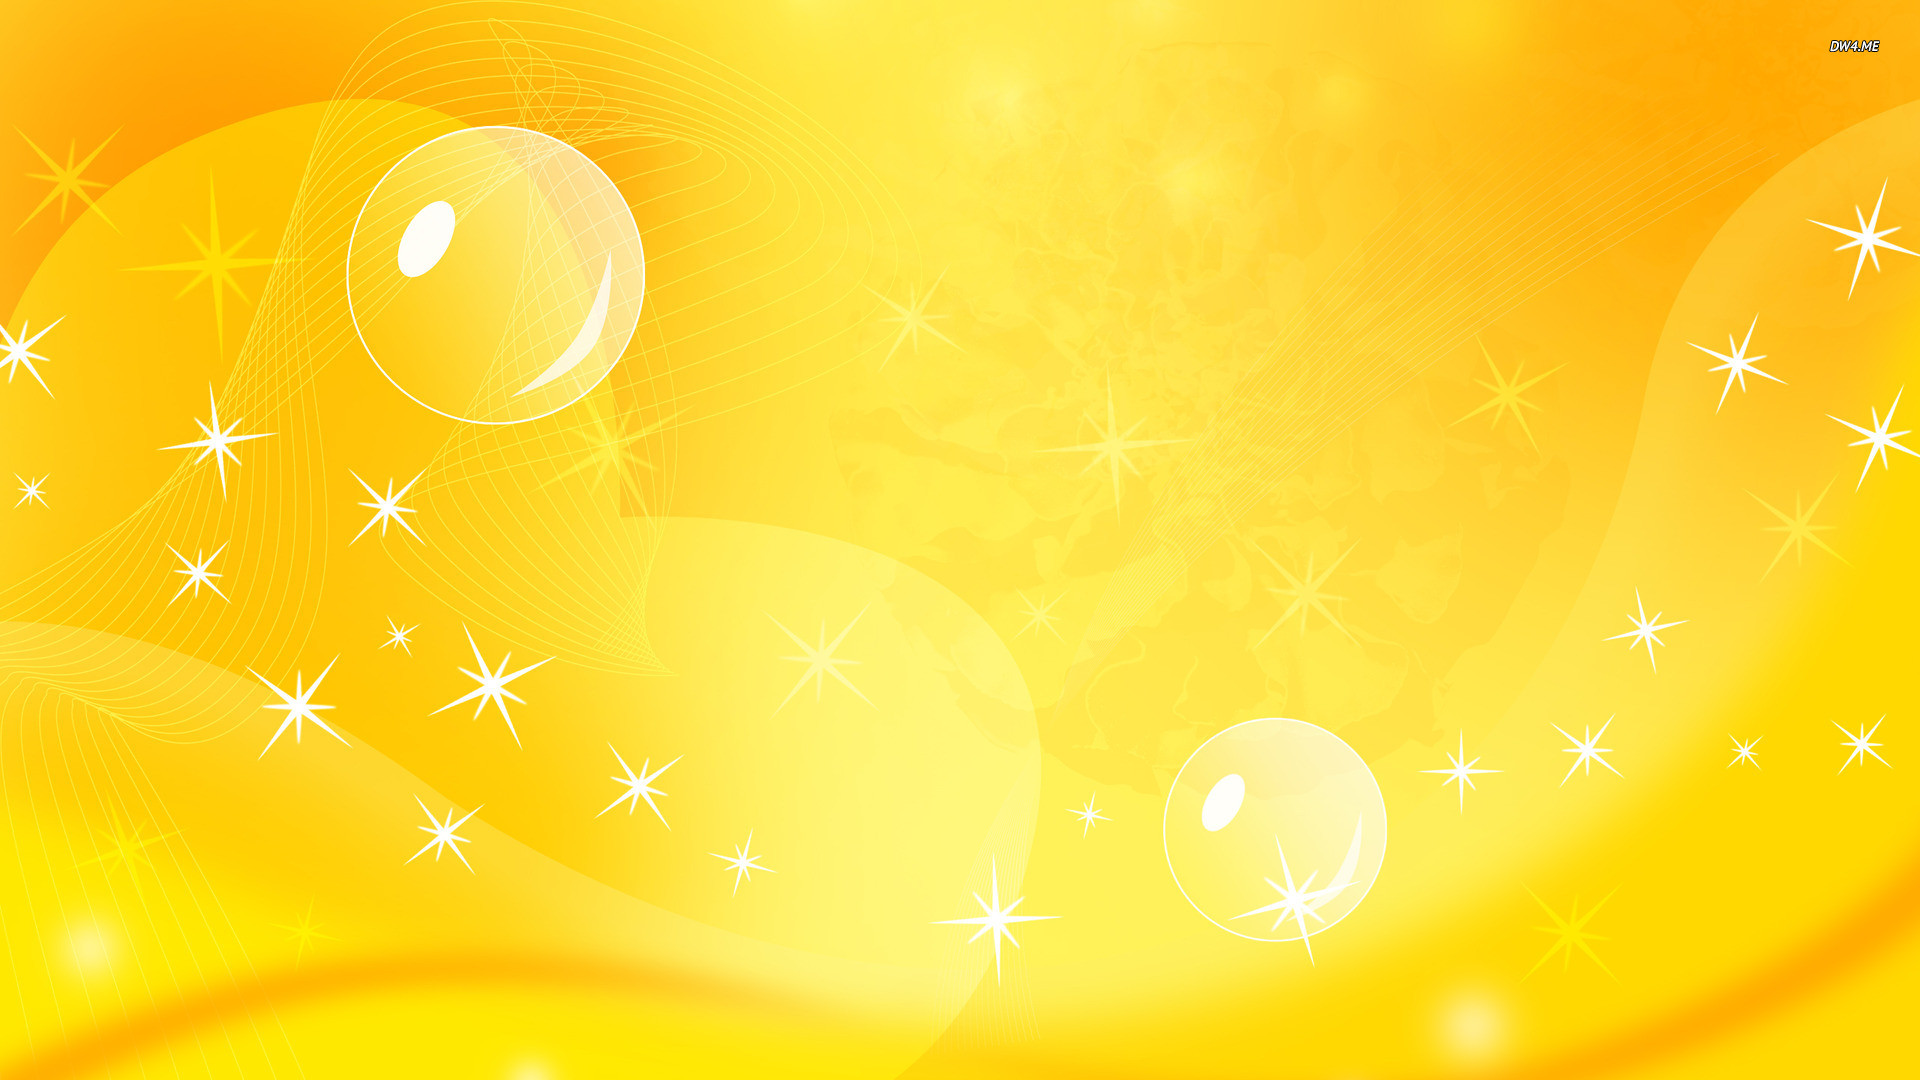 Yellow curves wallpaper – Abstract wallpapers – #833